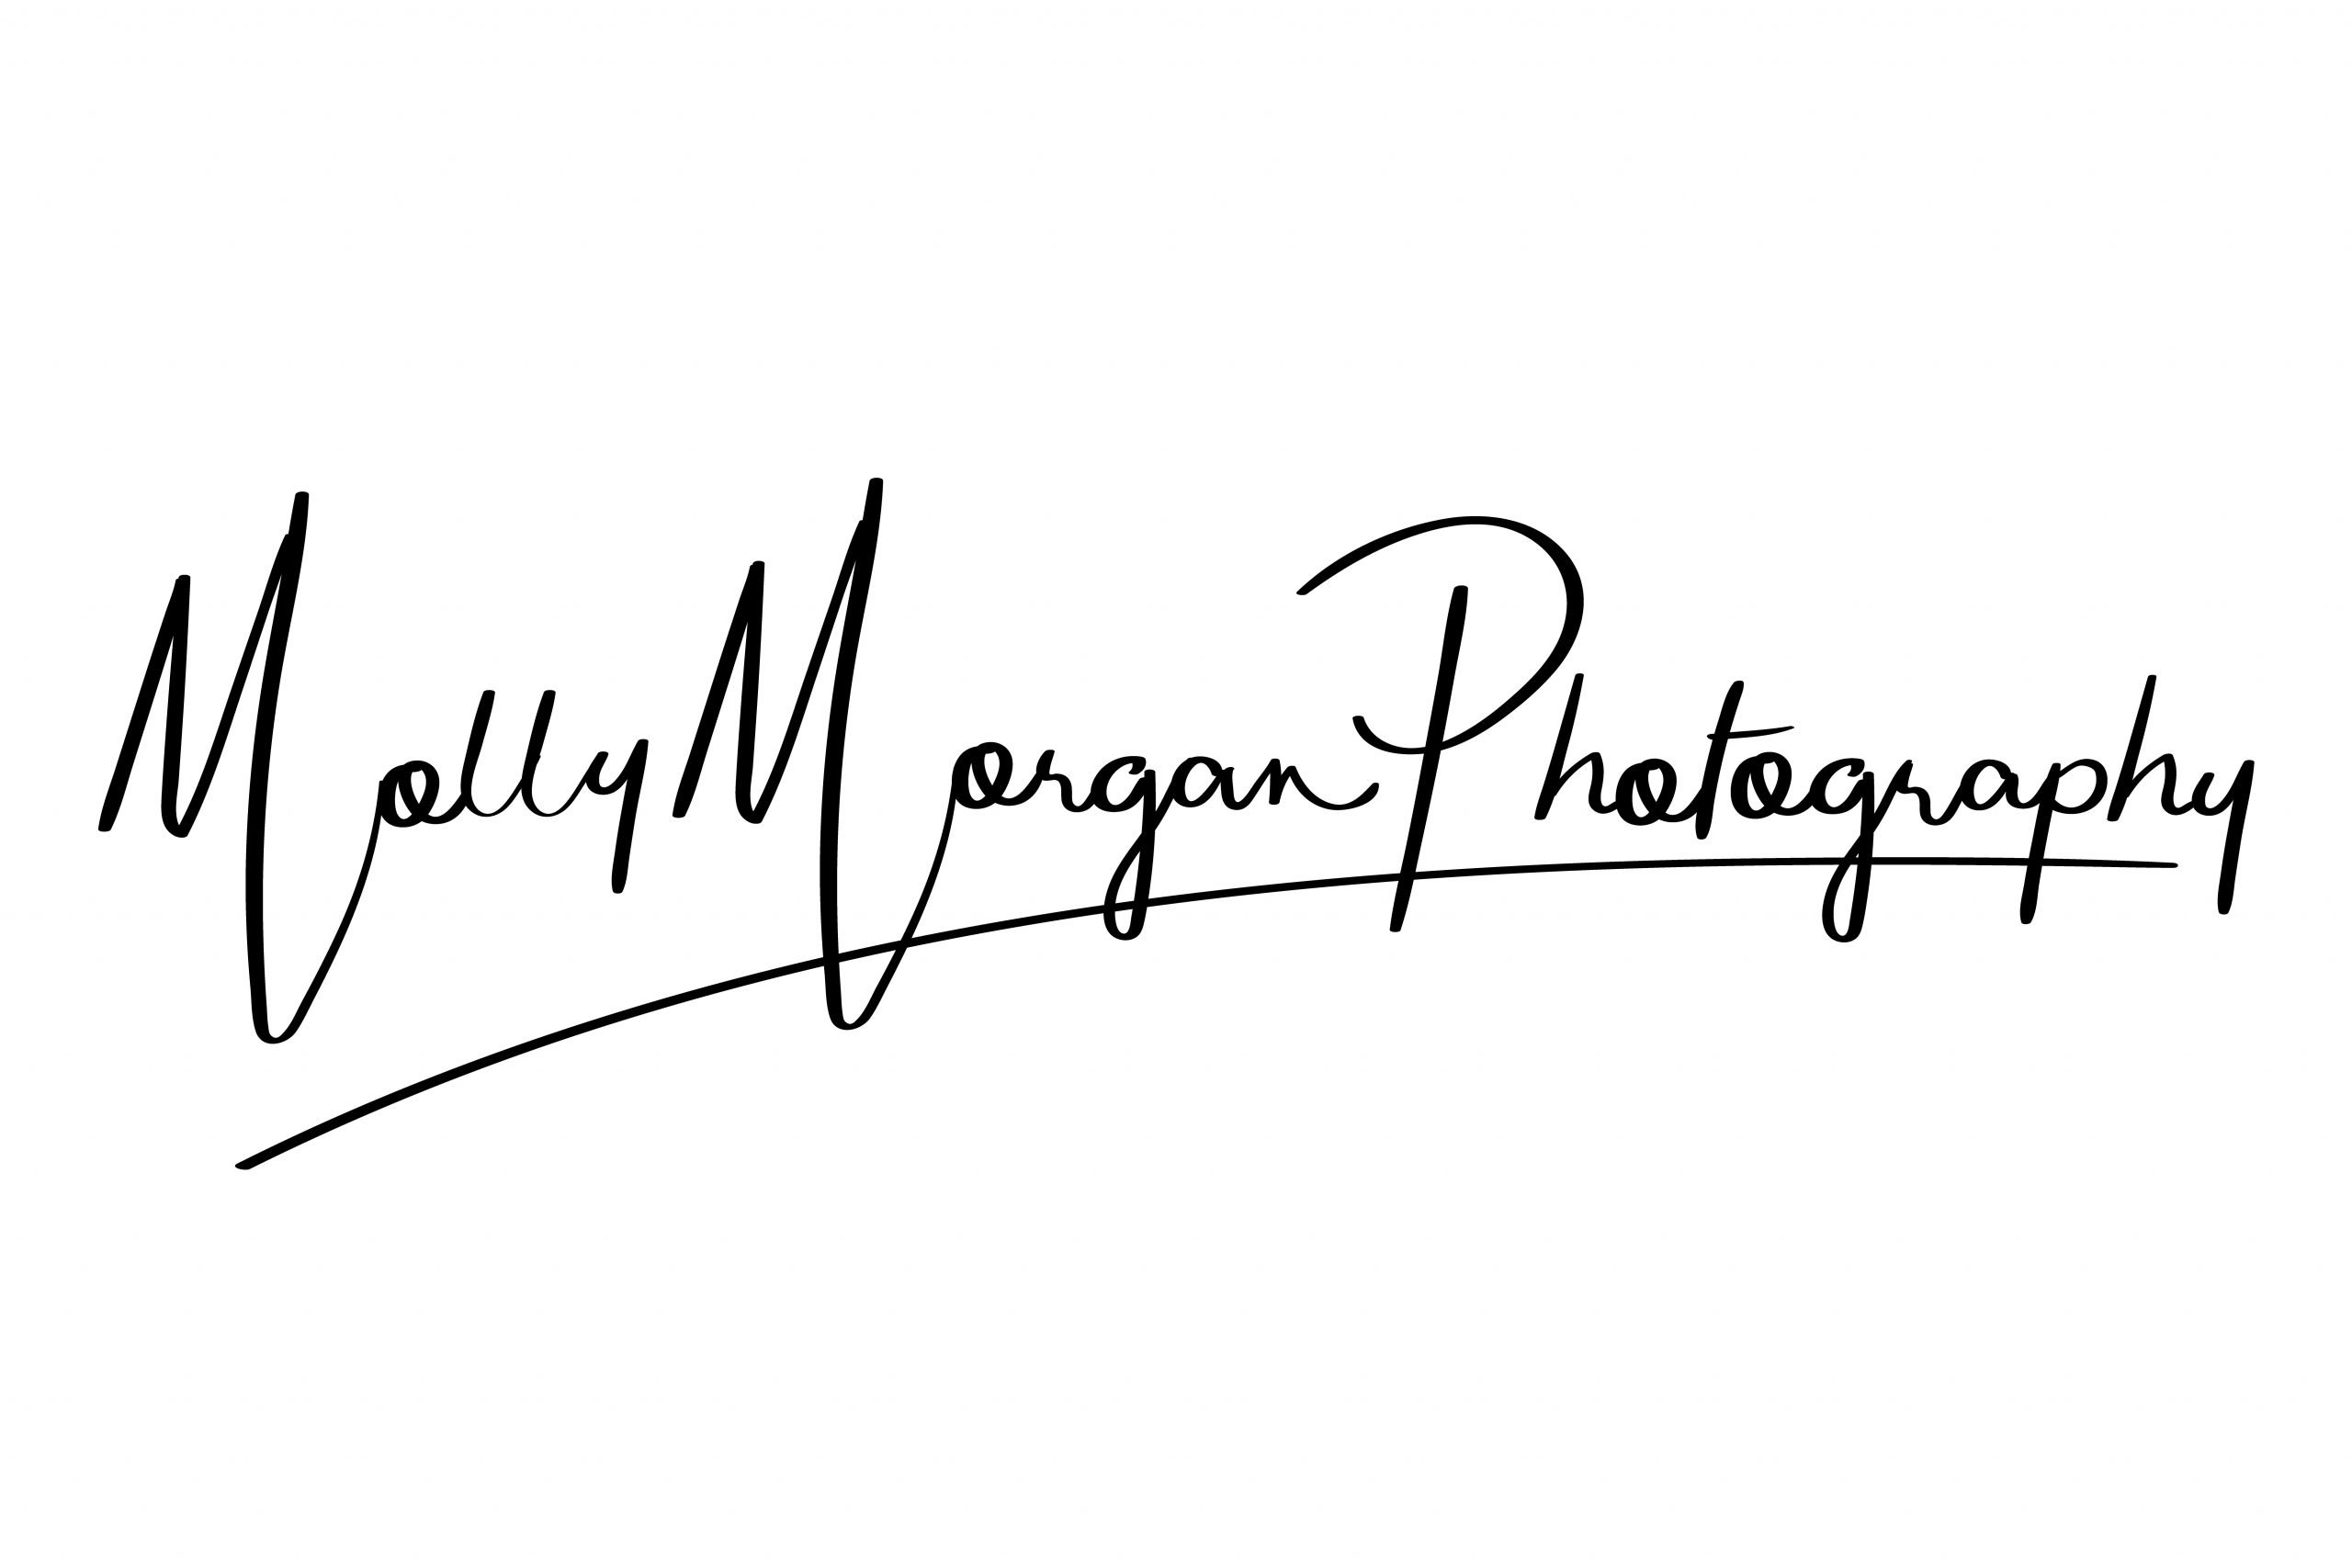 Molly Morgan Photography